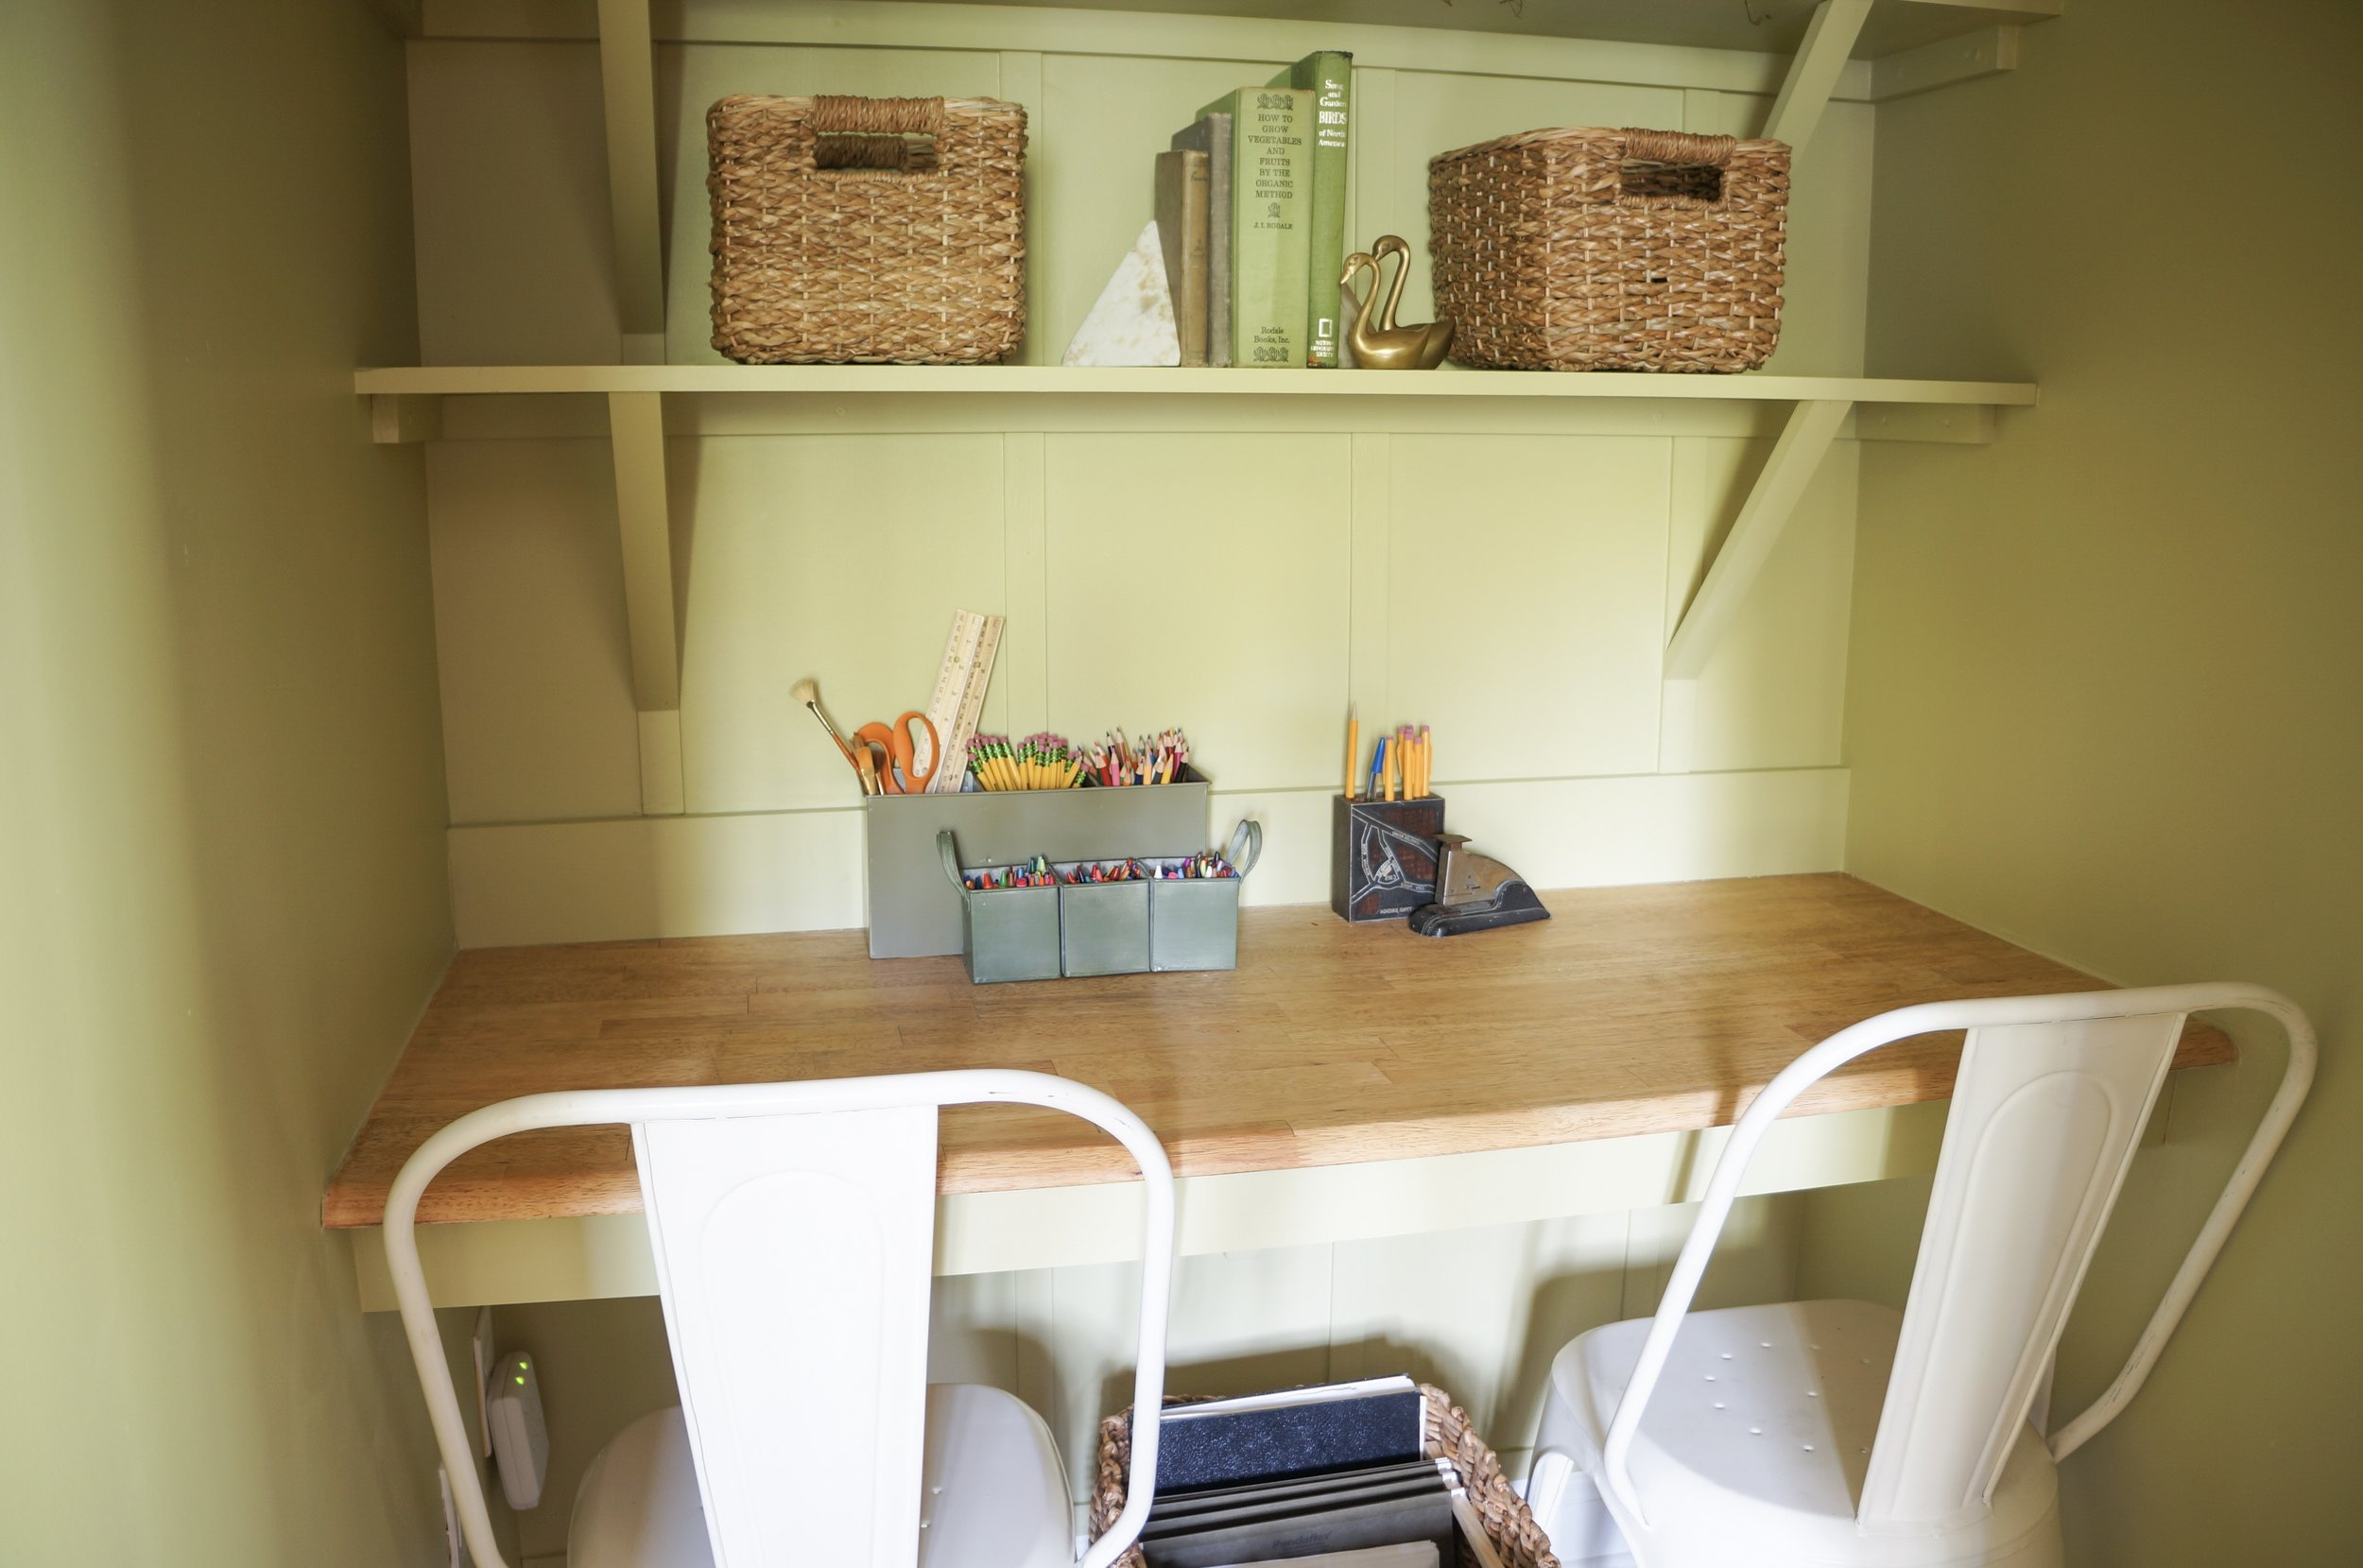 Baskets are the perfect storage solution for this space!